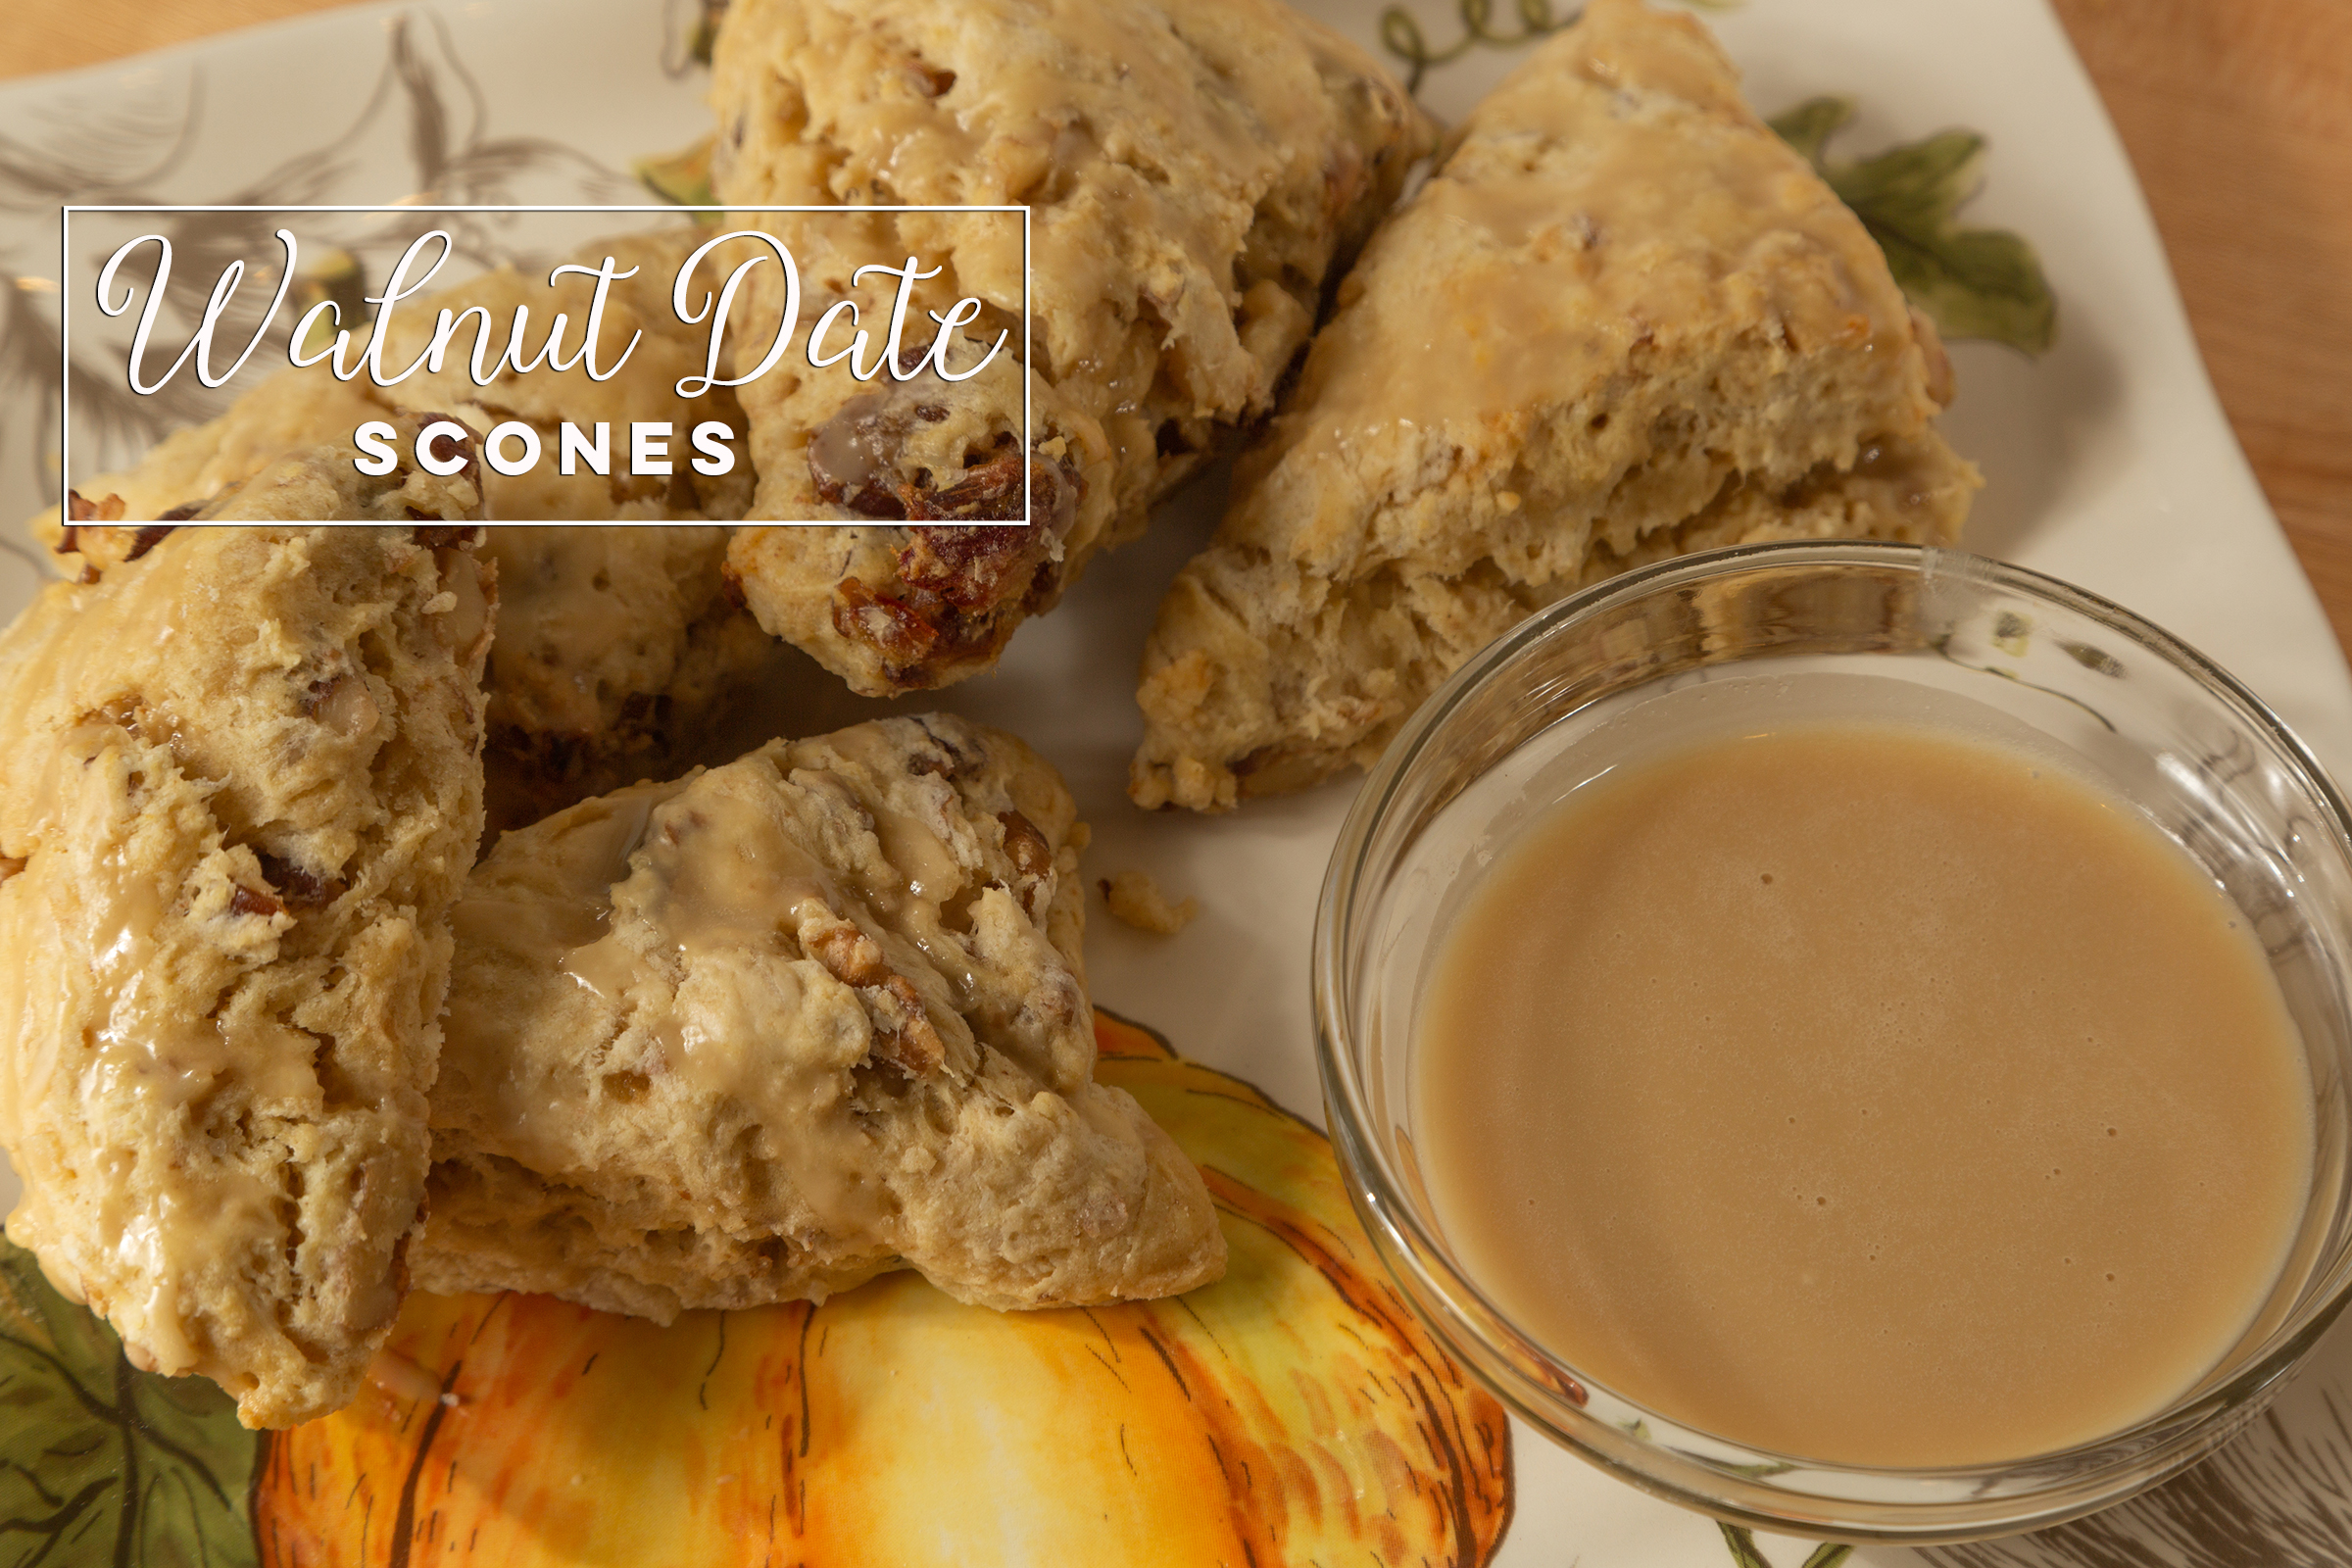 Walnut Date Scones - These delicious, flaky scones drizzled with maple glaze are just right paired with your favorite hot beverage. Click the photo for recipe.